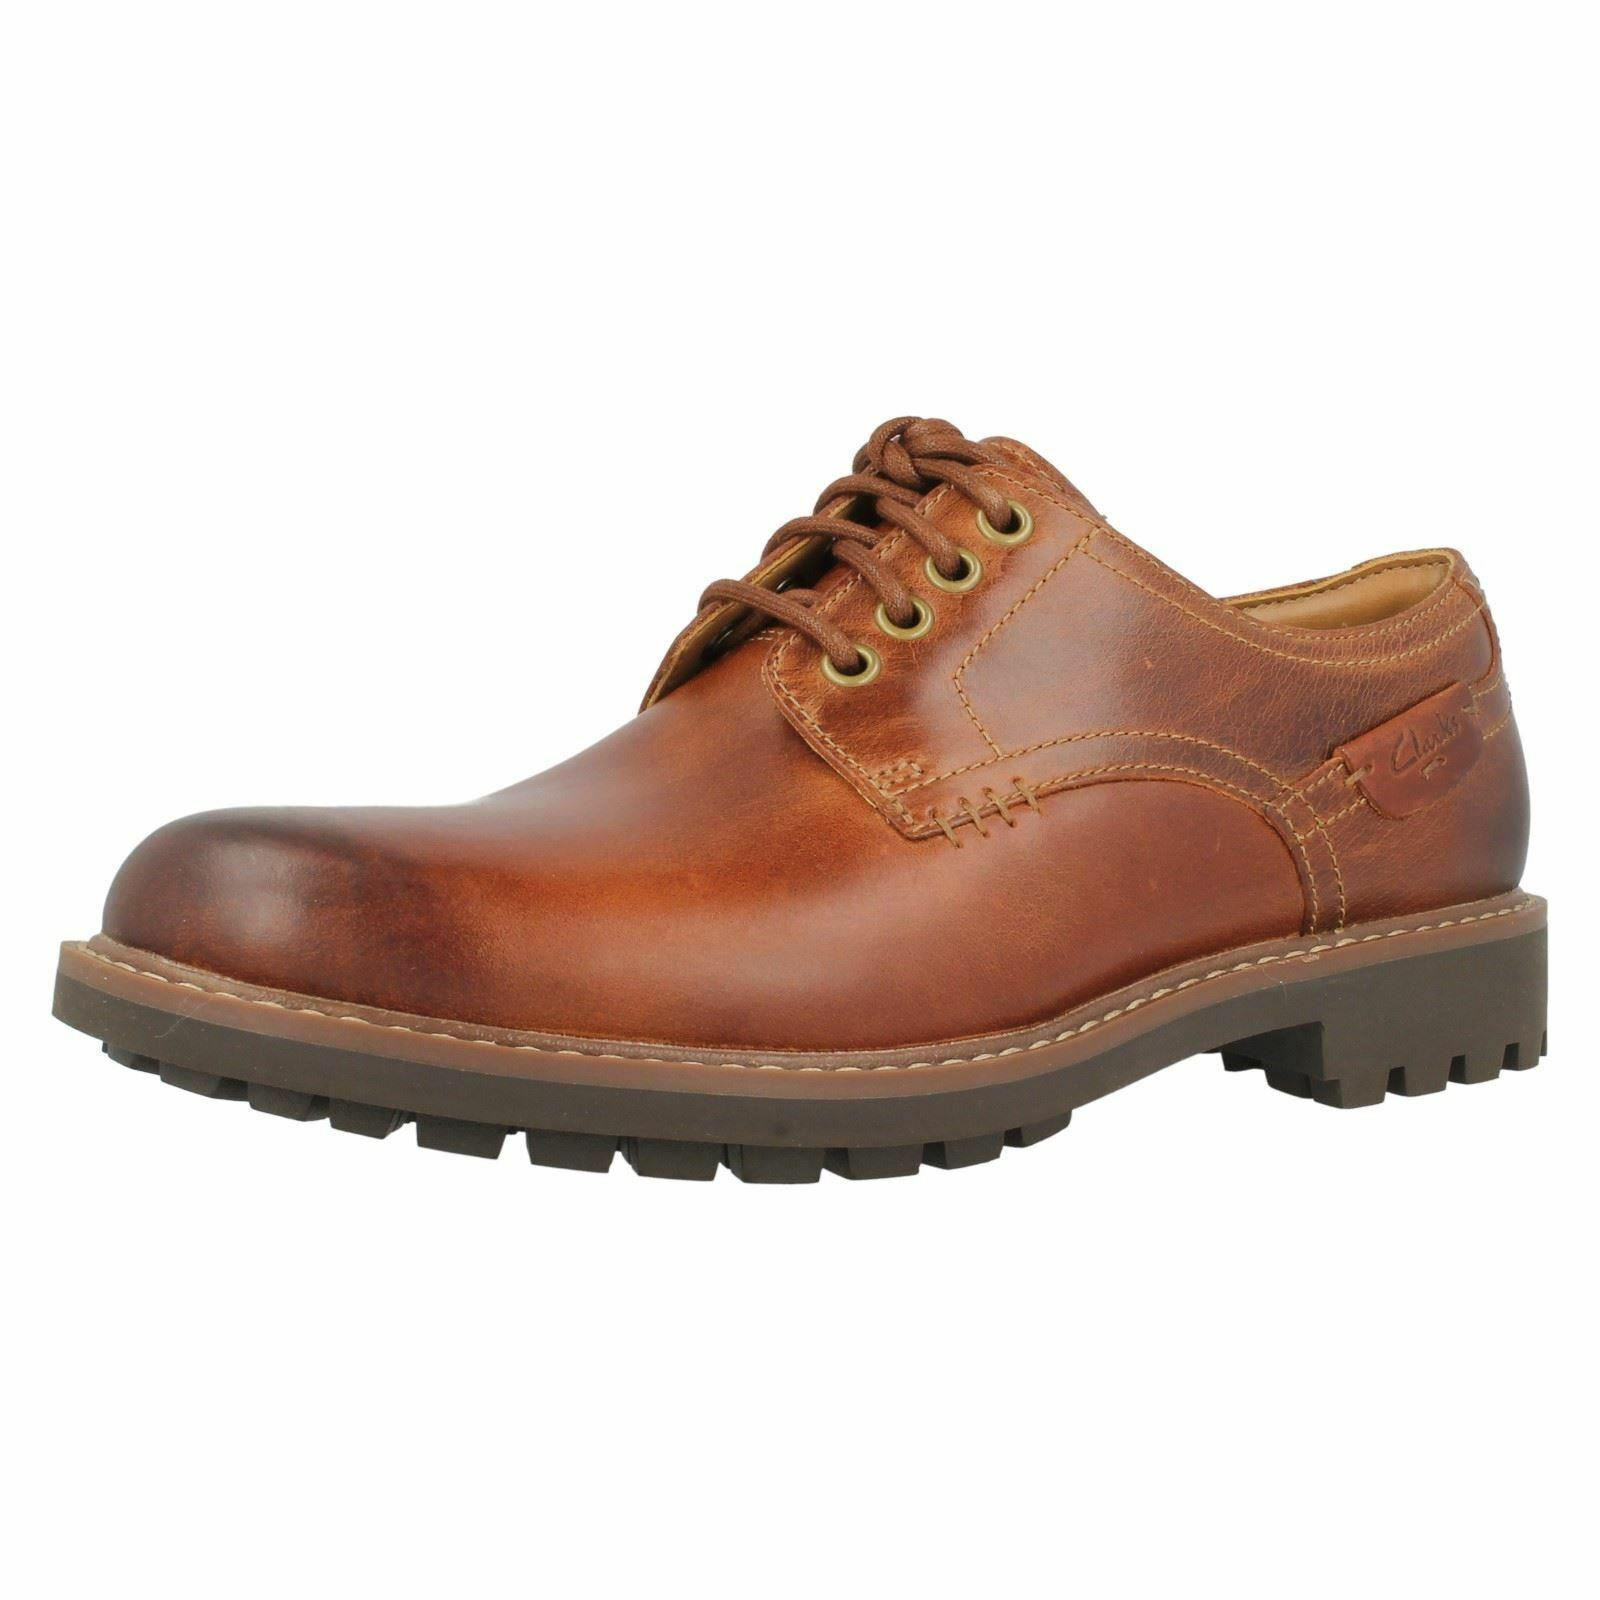 Clarks Montacute Hall Dark Tan Pelle Lacci Casual Scarpe Derby